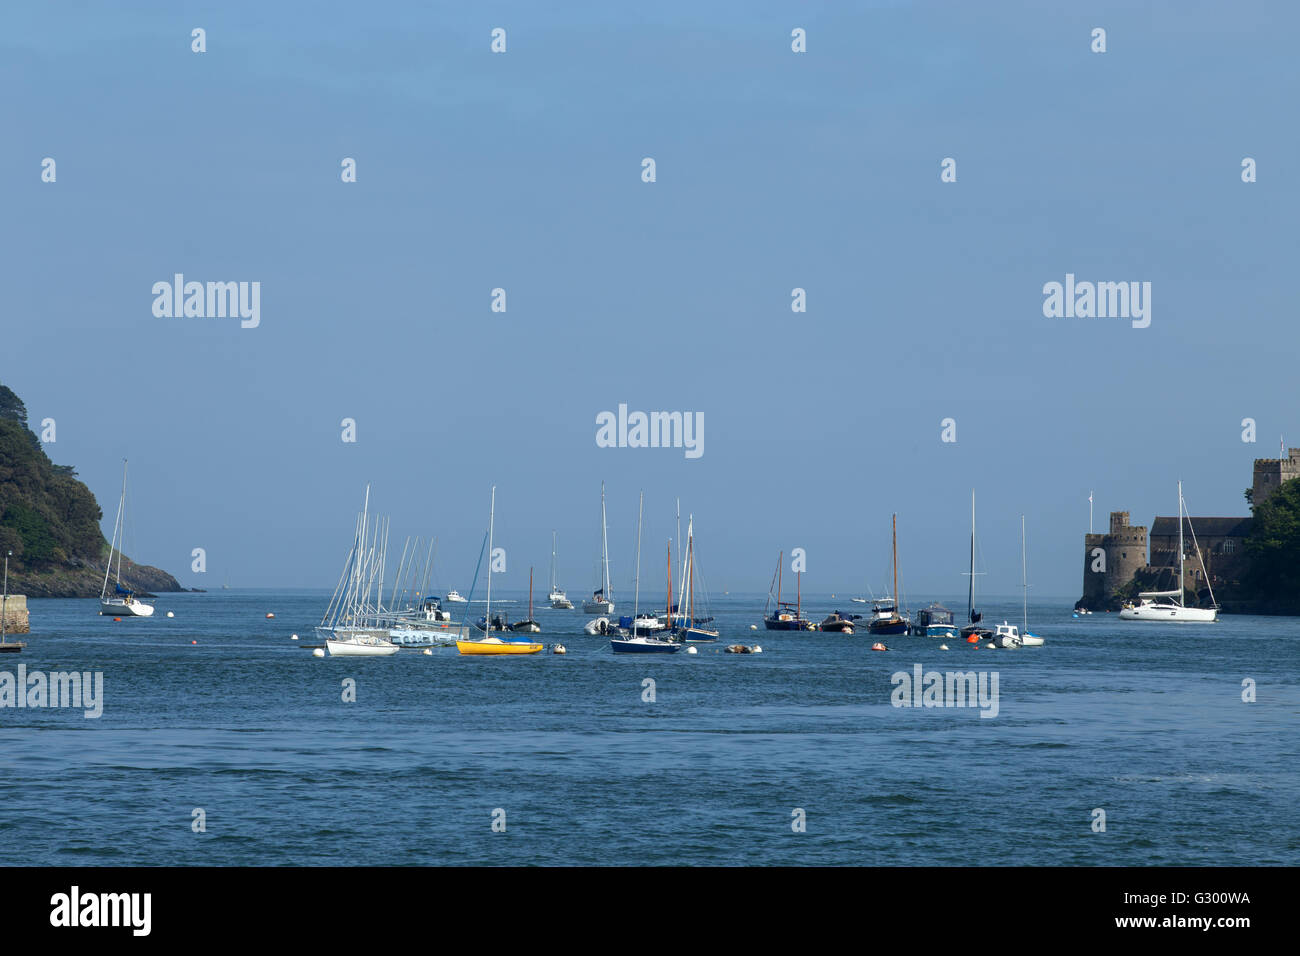 Looking out to sea along the River Dart from Dartmouth - Stock Image